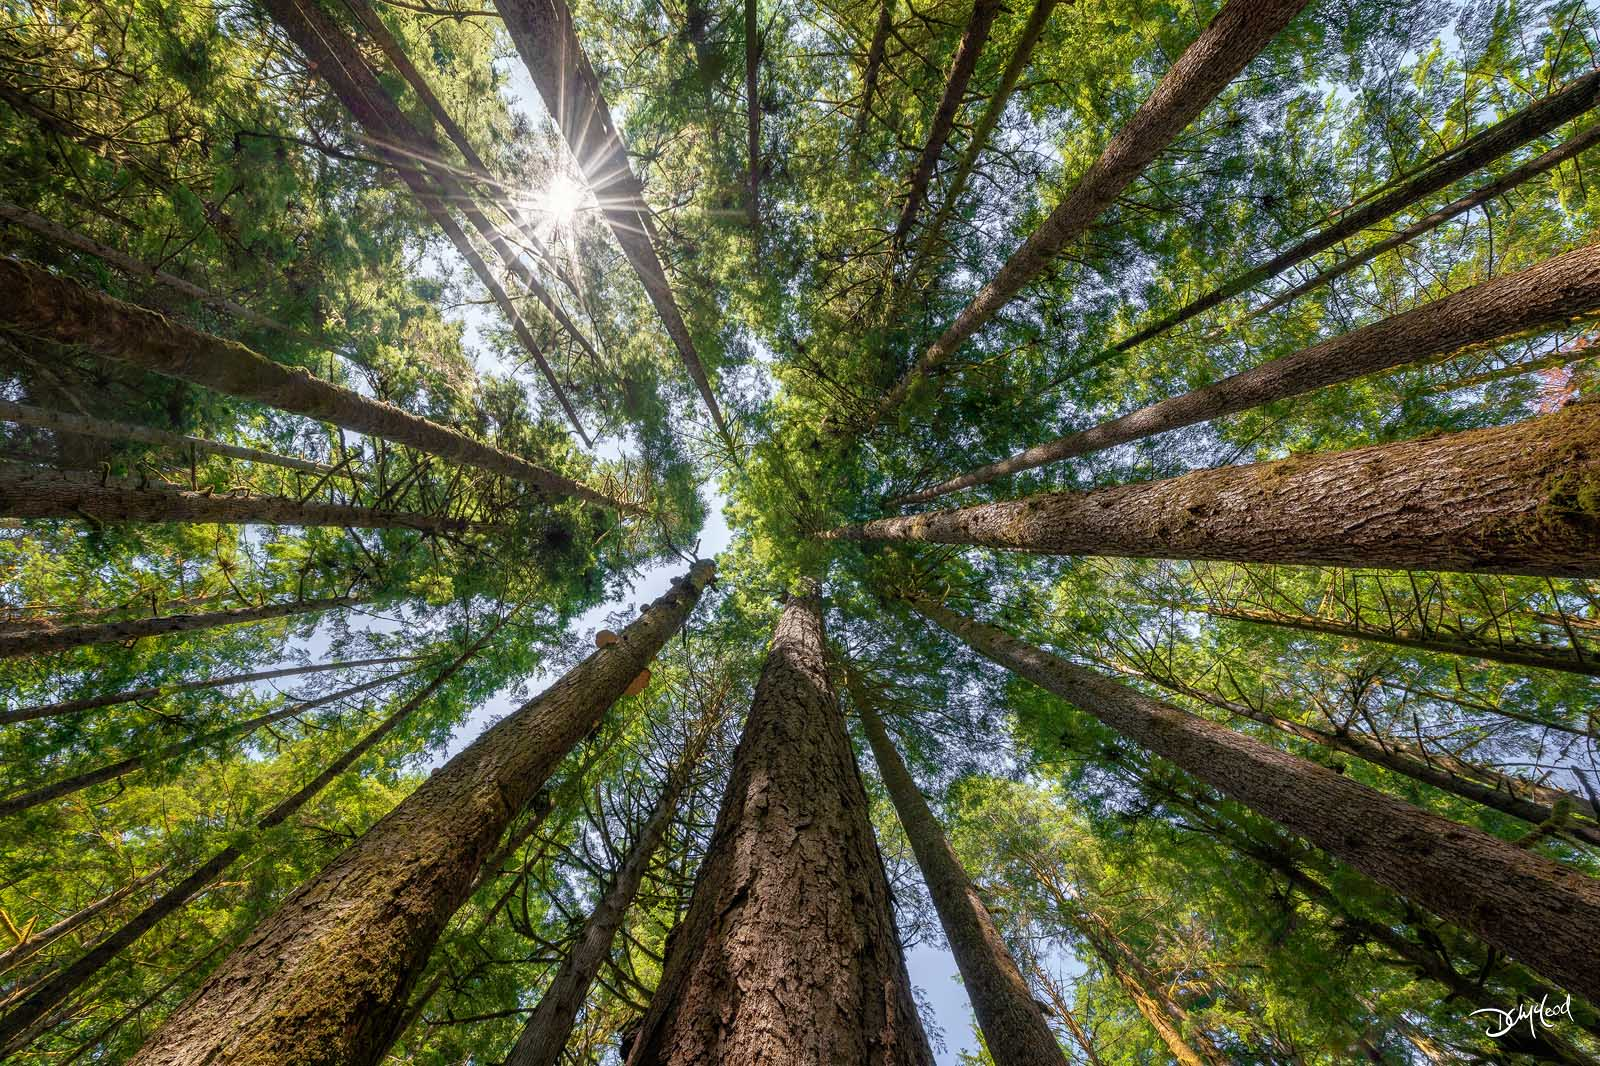 port renfrew, british columbia, old growth forest, sunstar, canopy, photo